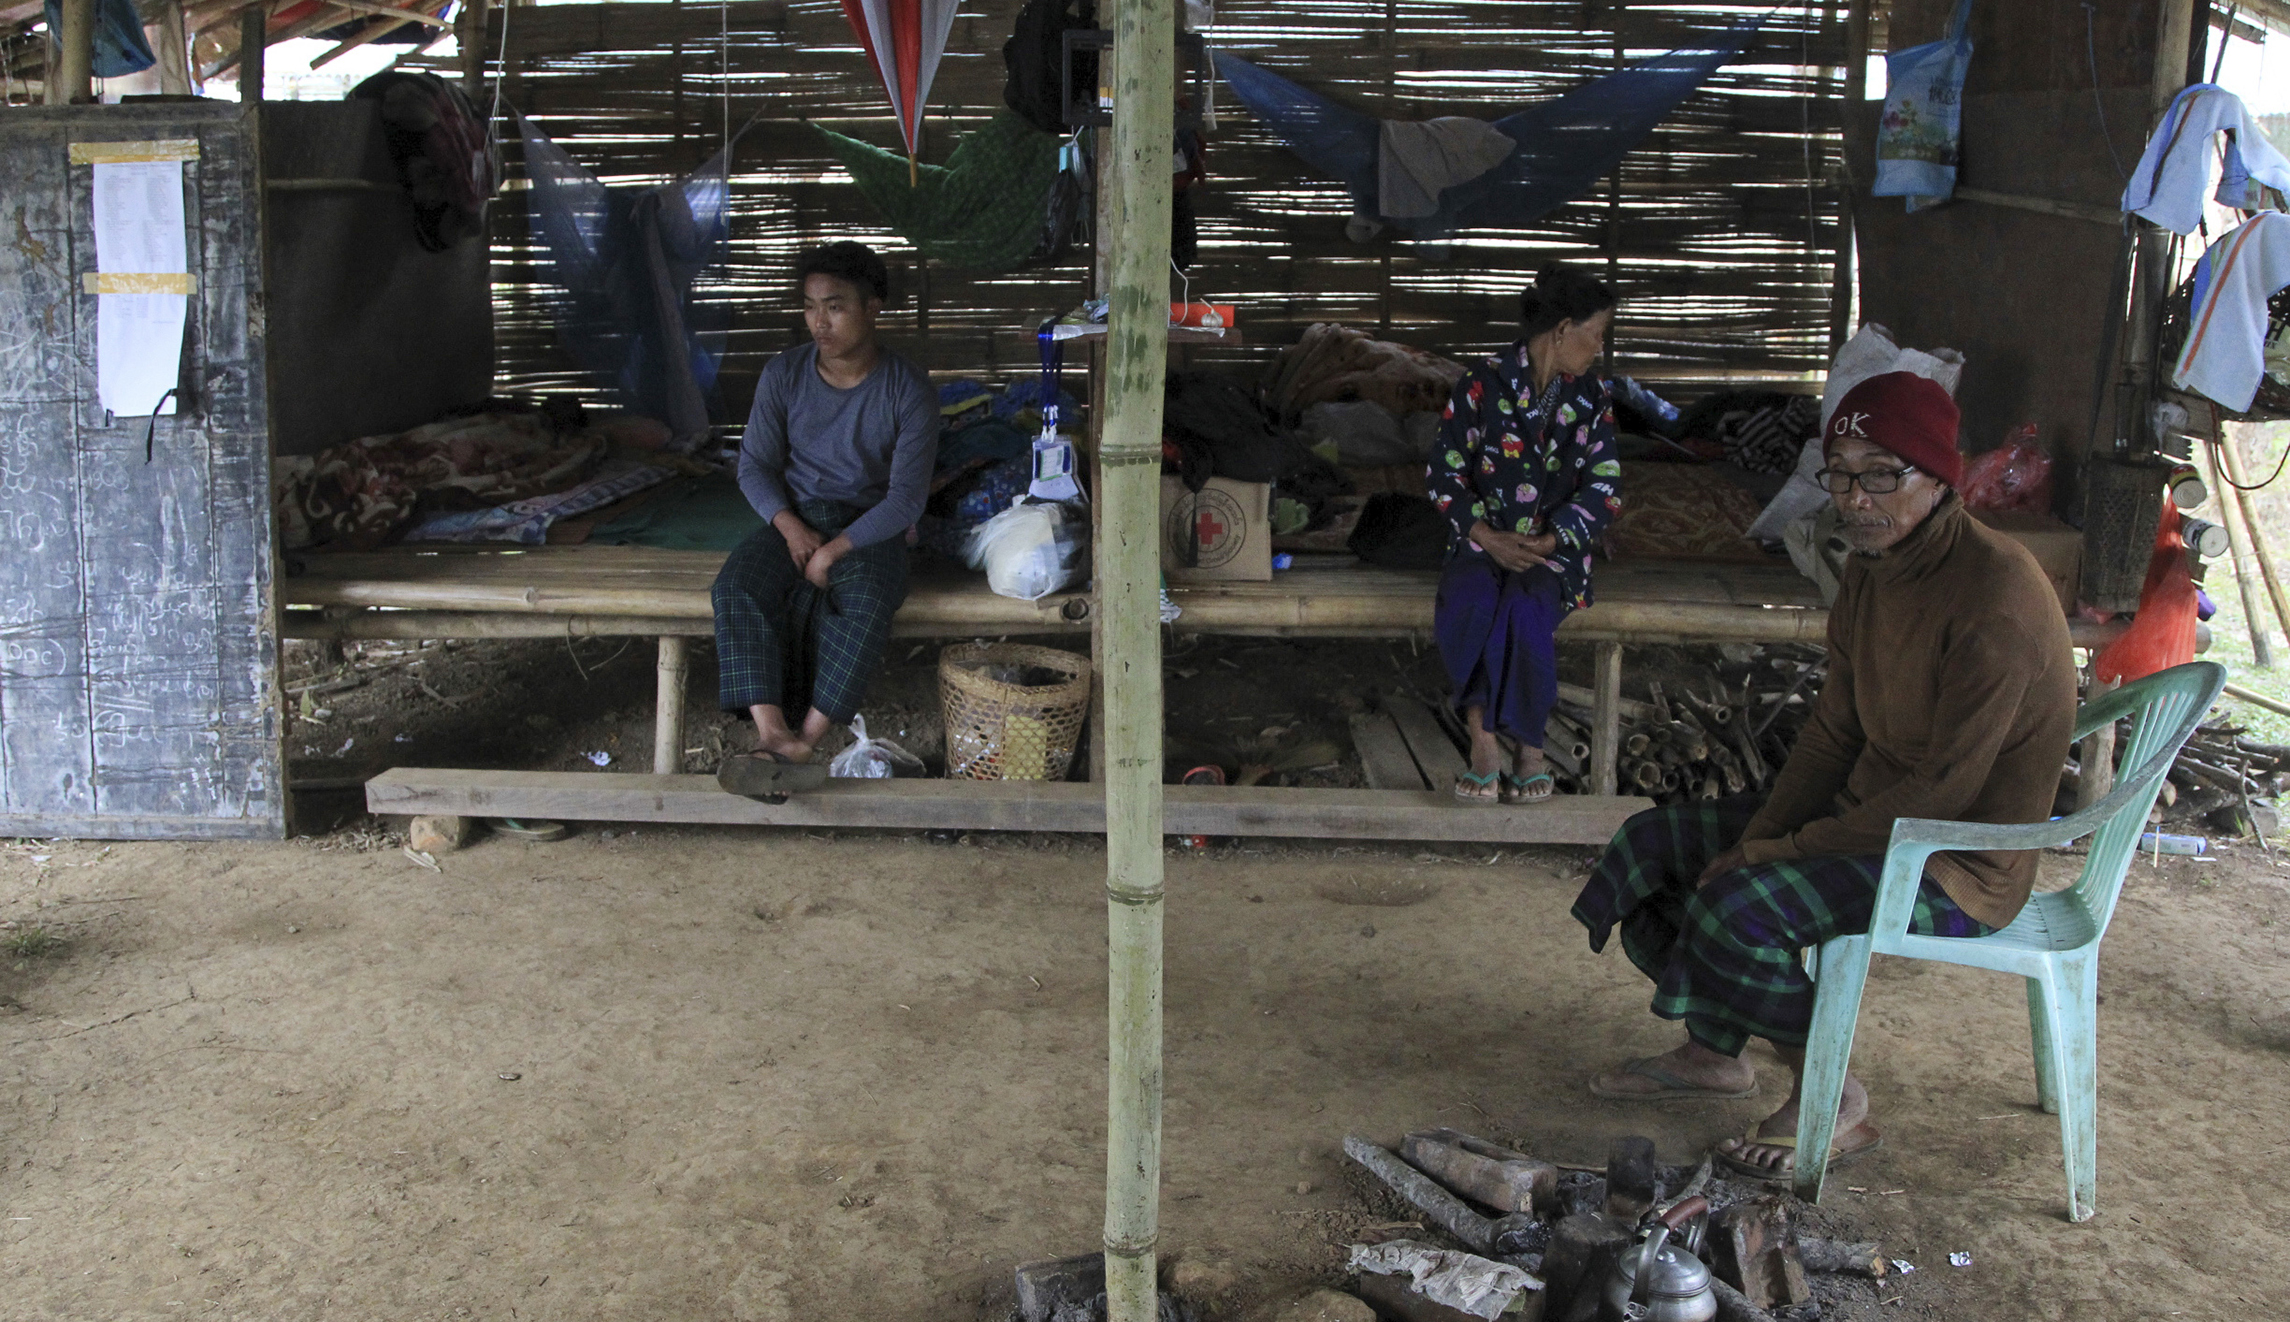 Silently, Burma is now expelling Rohingyas from its detention camps